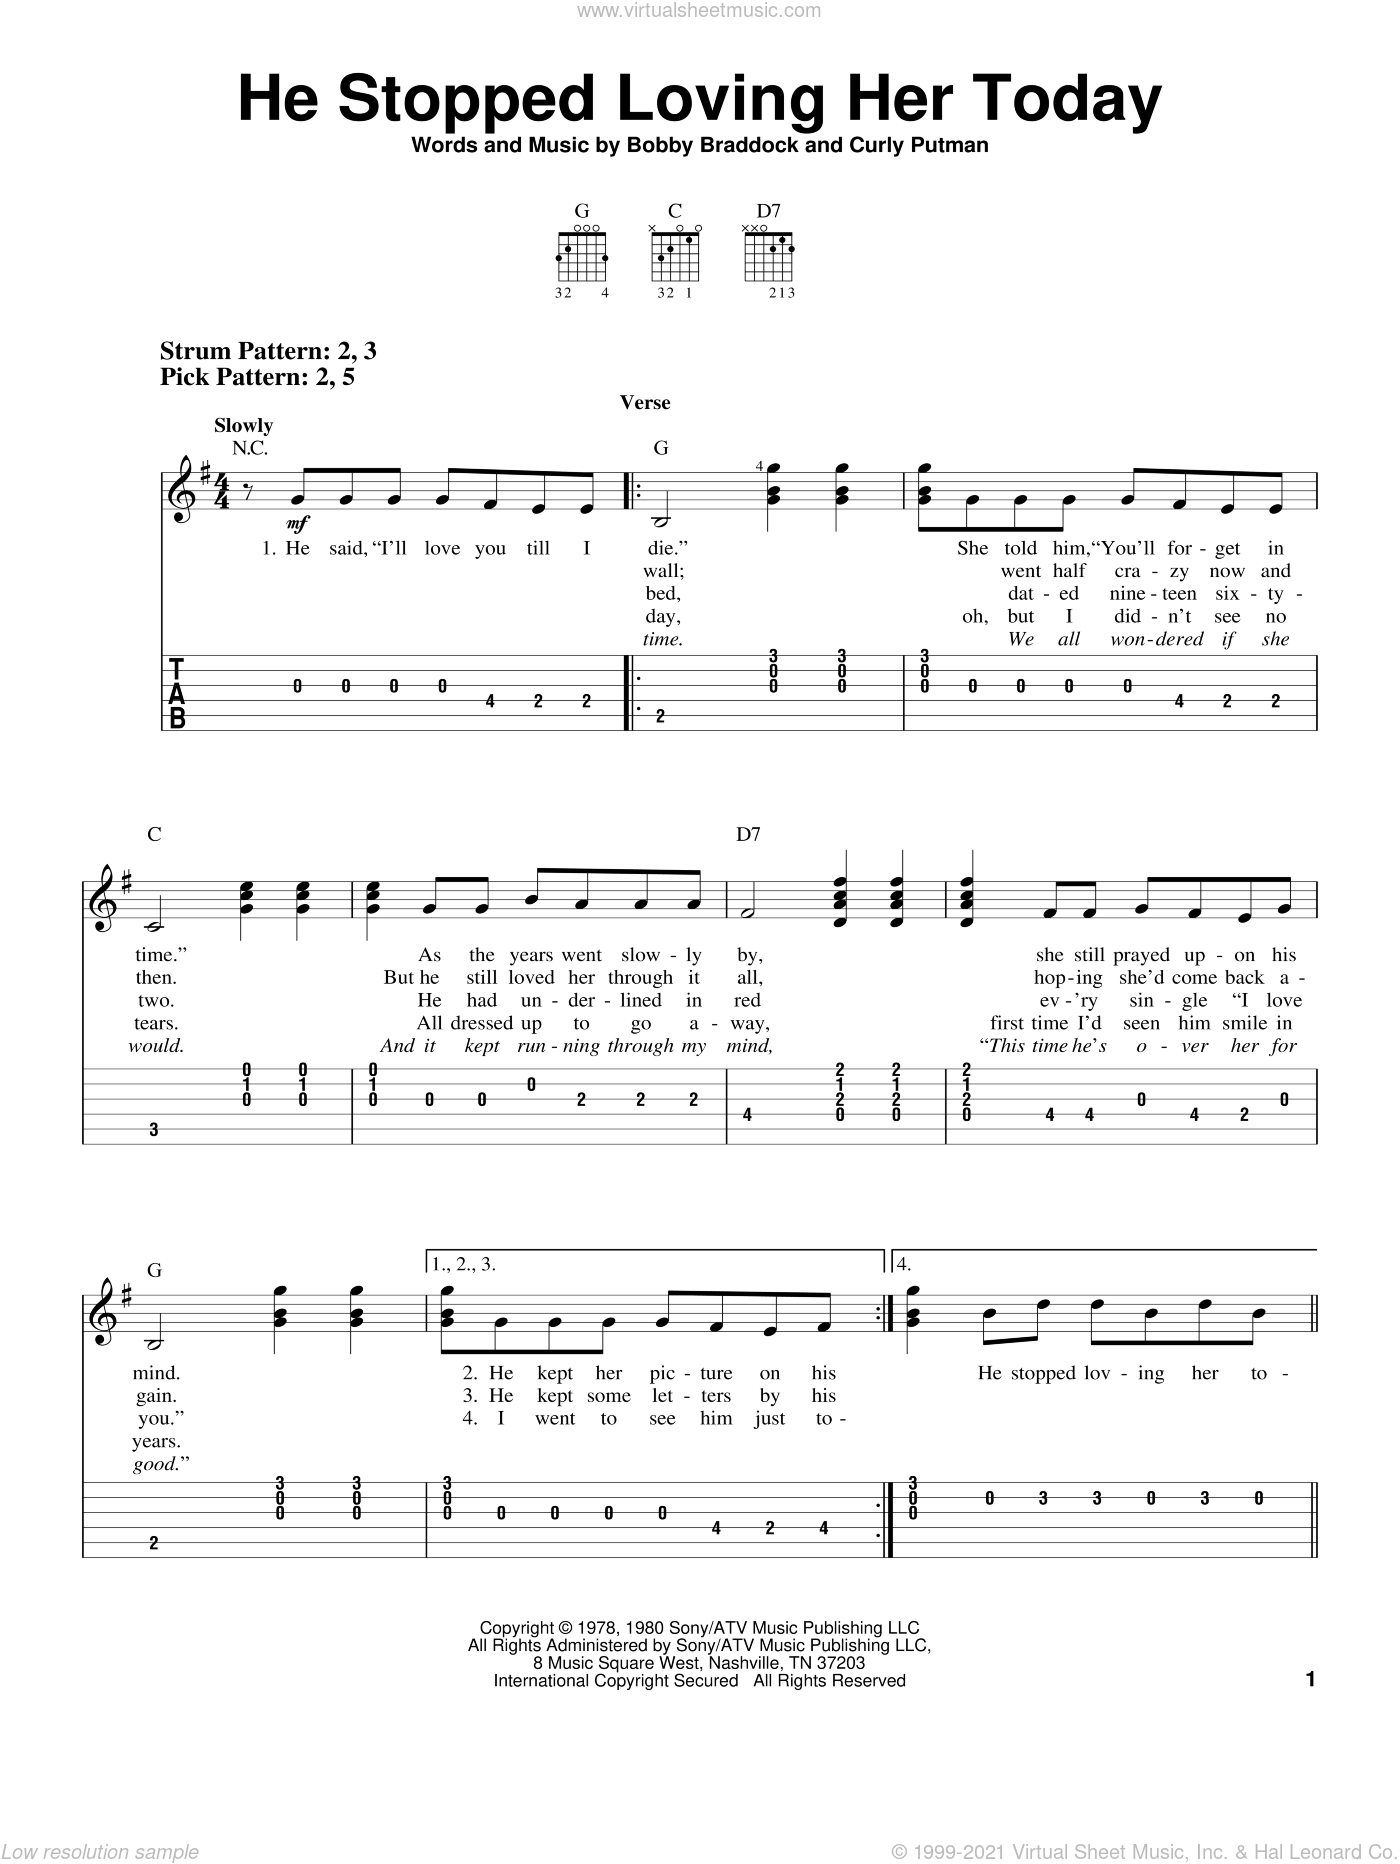 He Stopped Loving Her Today sheet music for guitar solo (easy tablature) by Curly Putman, George Jones, Johnny Cash, Johnny Paycheck and Bobby Braddock. Score Image Preview.